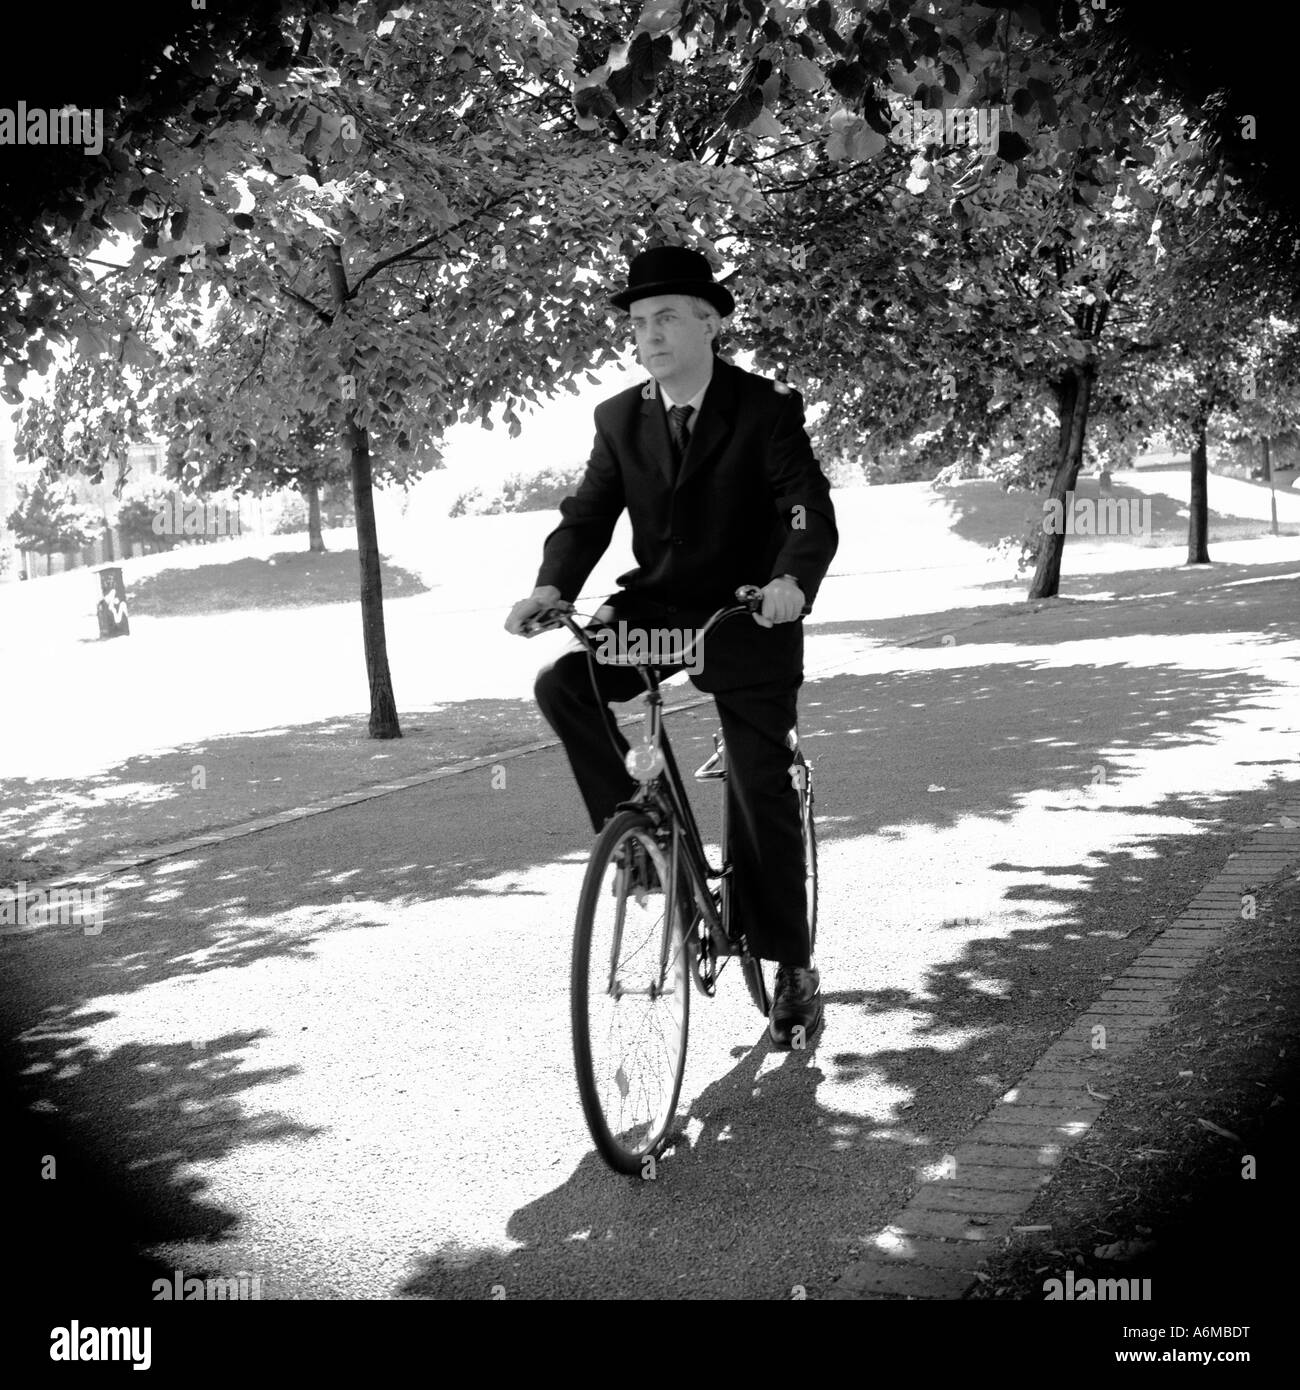 Englishman cycling on bike wearing traditional suit and bowler hat - Stock Image